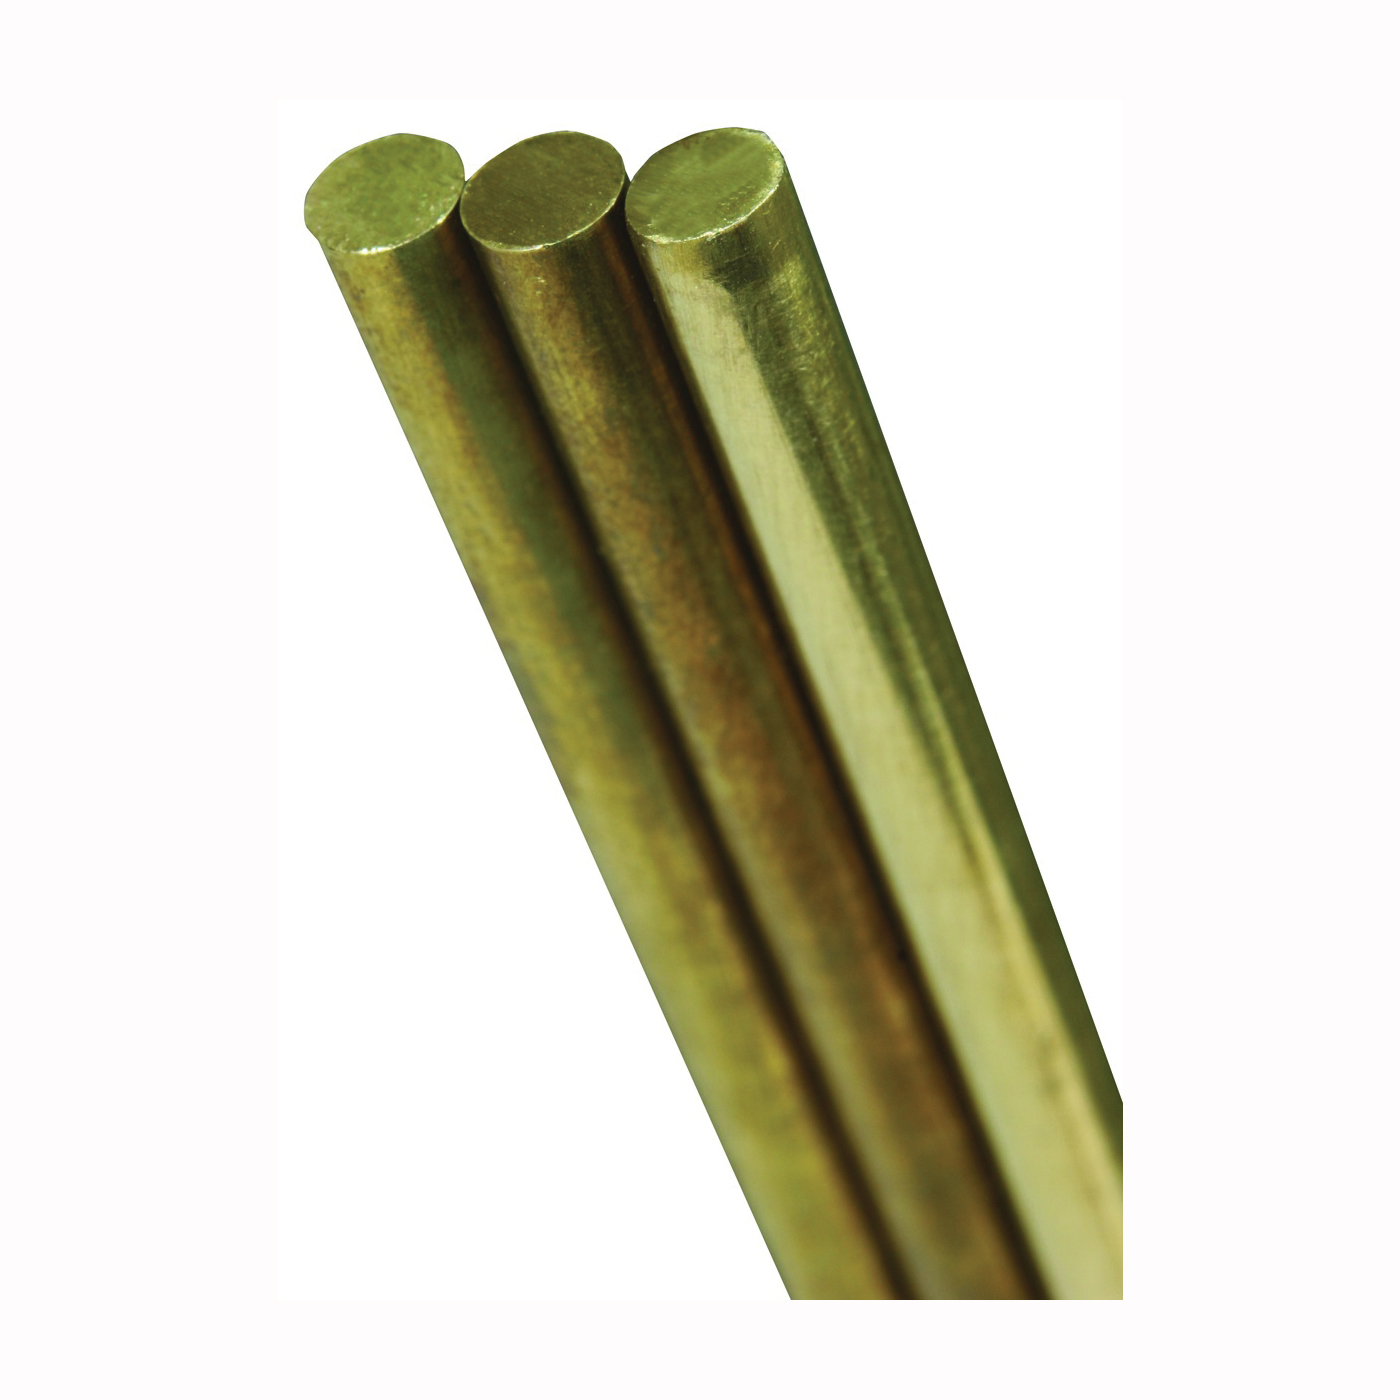 Picture of K & S 8161 Round Rod, 3/64 in Dia, 12 in L, 260 Brass, 260 Grade